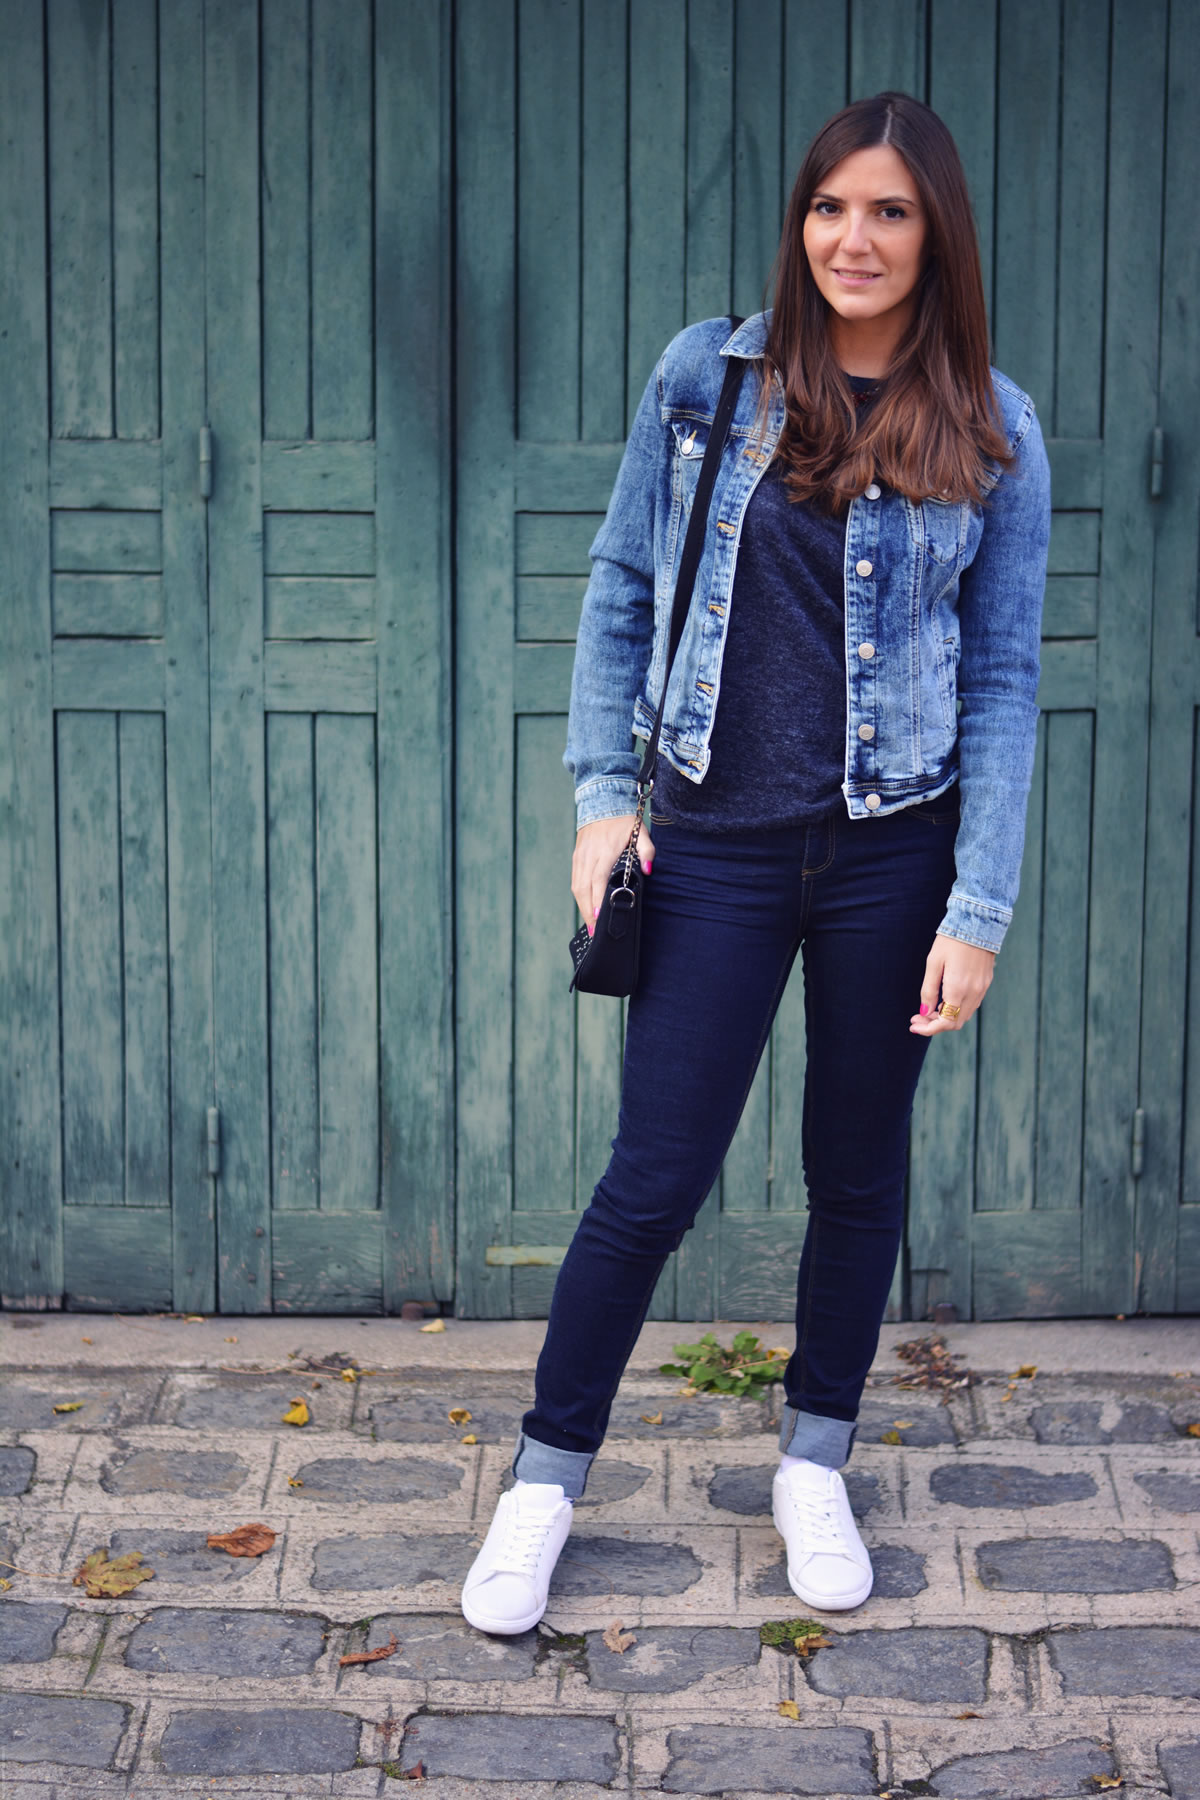 fashion bloger wearing jeans